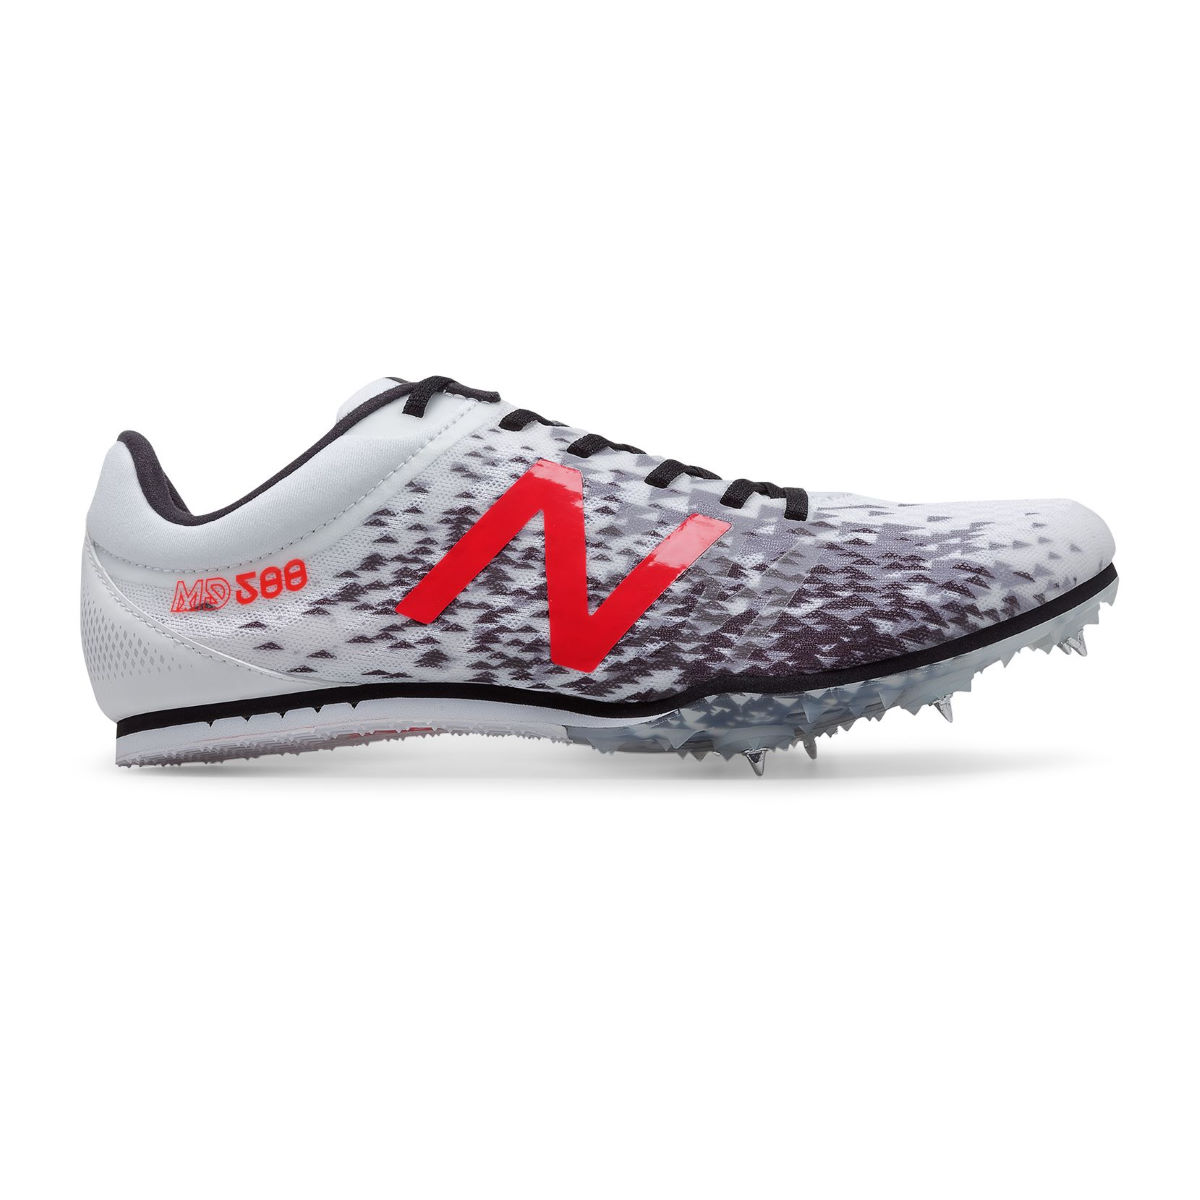 New Balance MD500 v5 Shoes - Zapatillas de atletismo